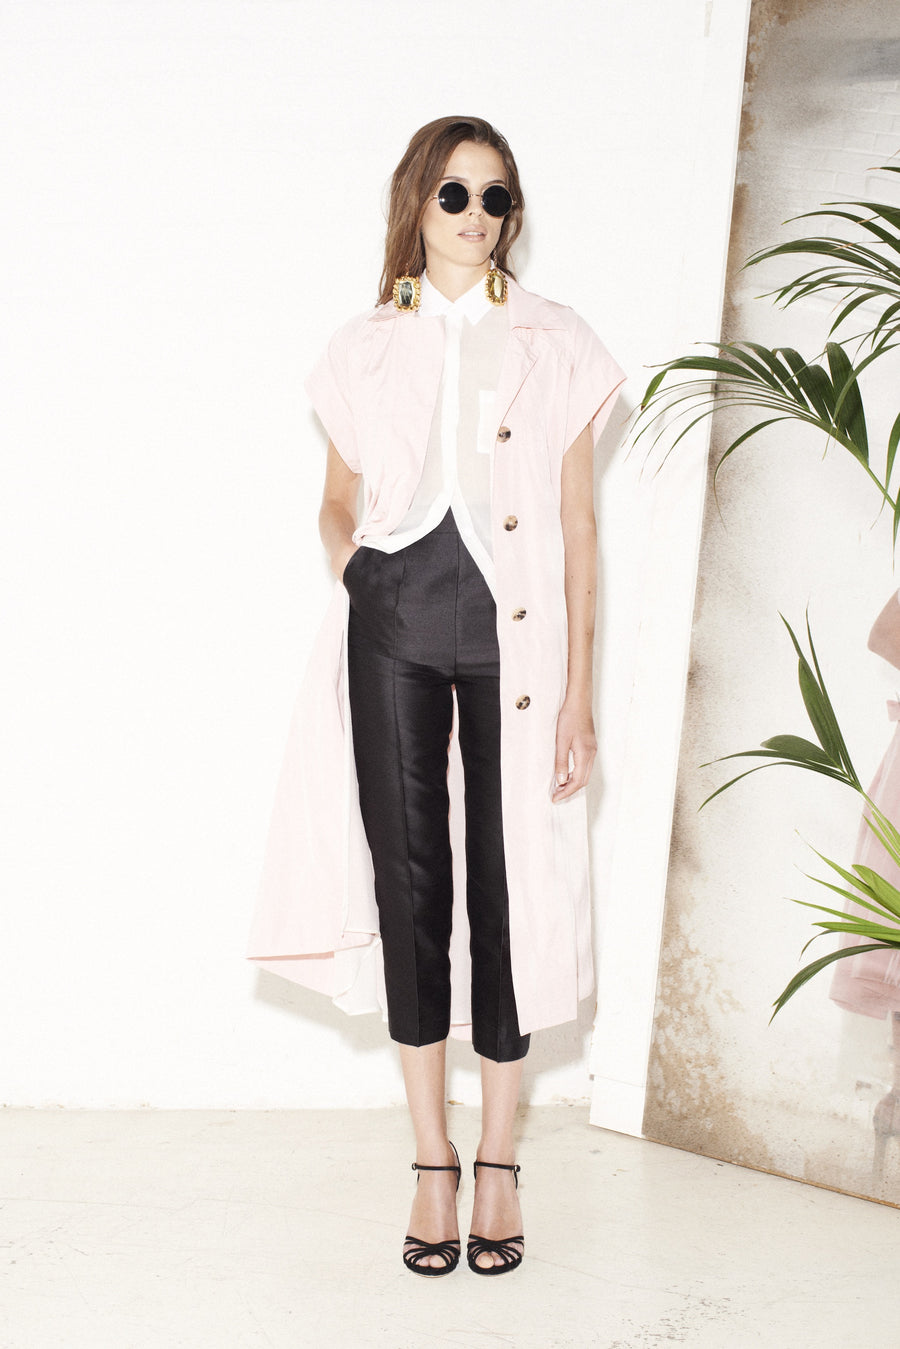 SS2013 / Look 13